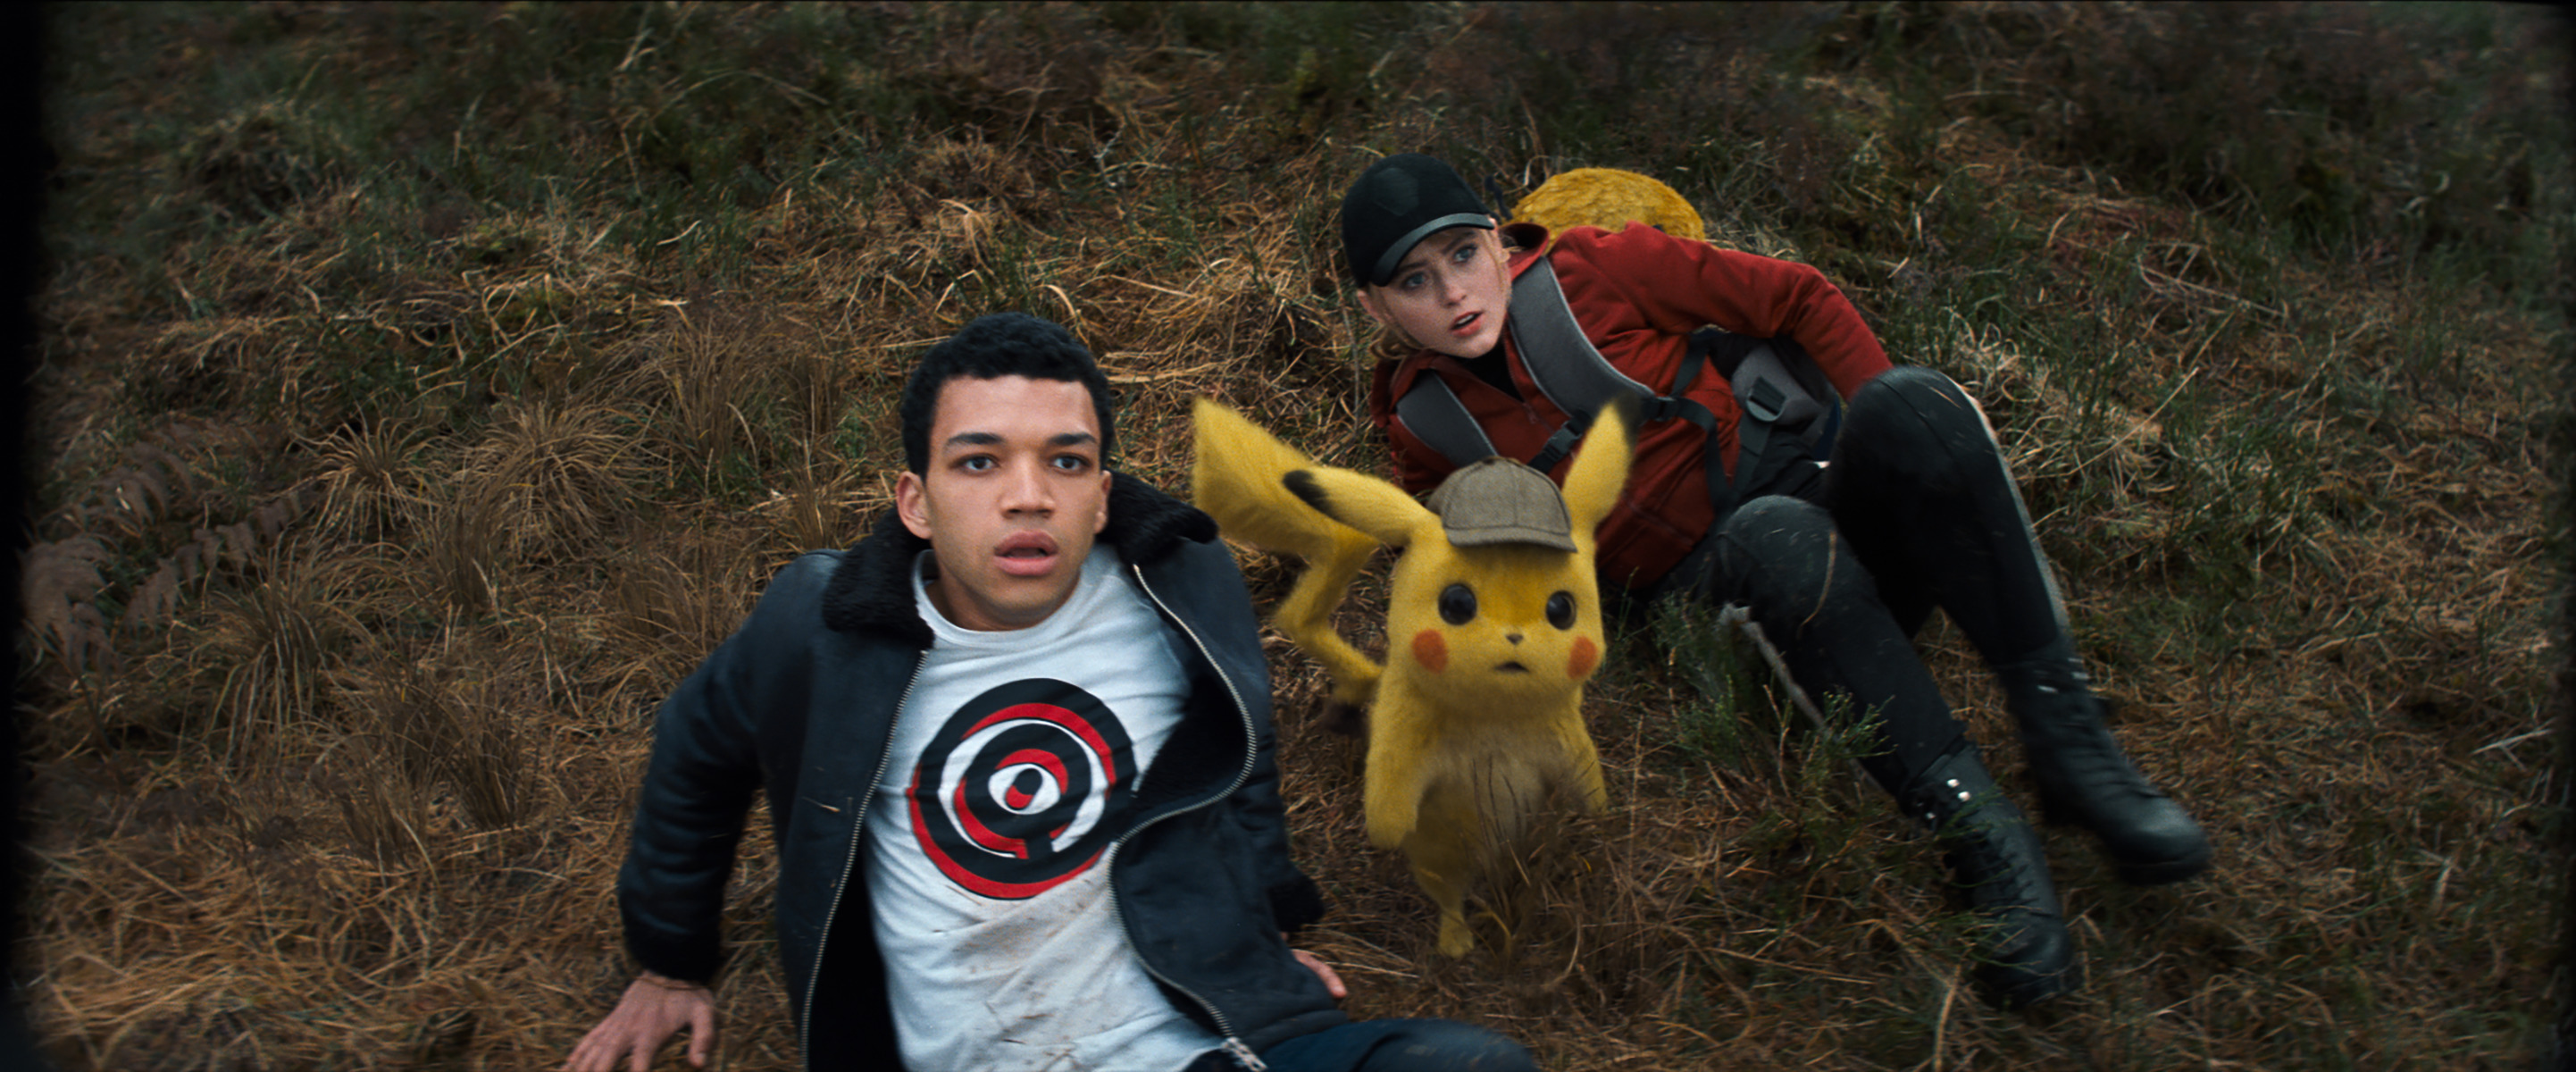 'Pokémon: Detective Pikachu' Movie Review Box Office